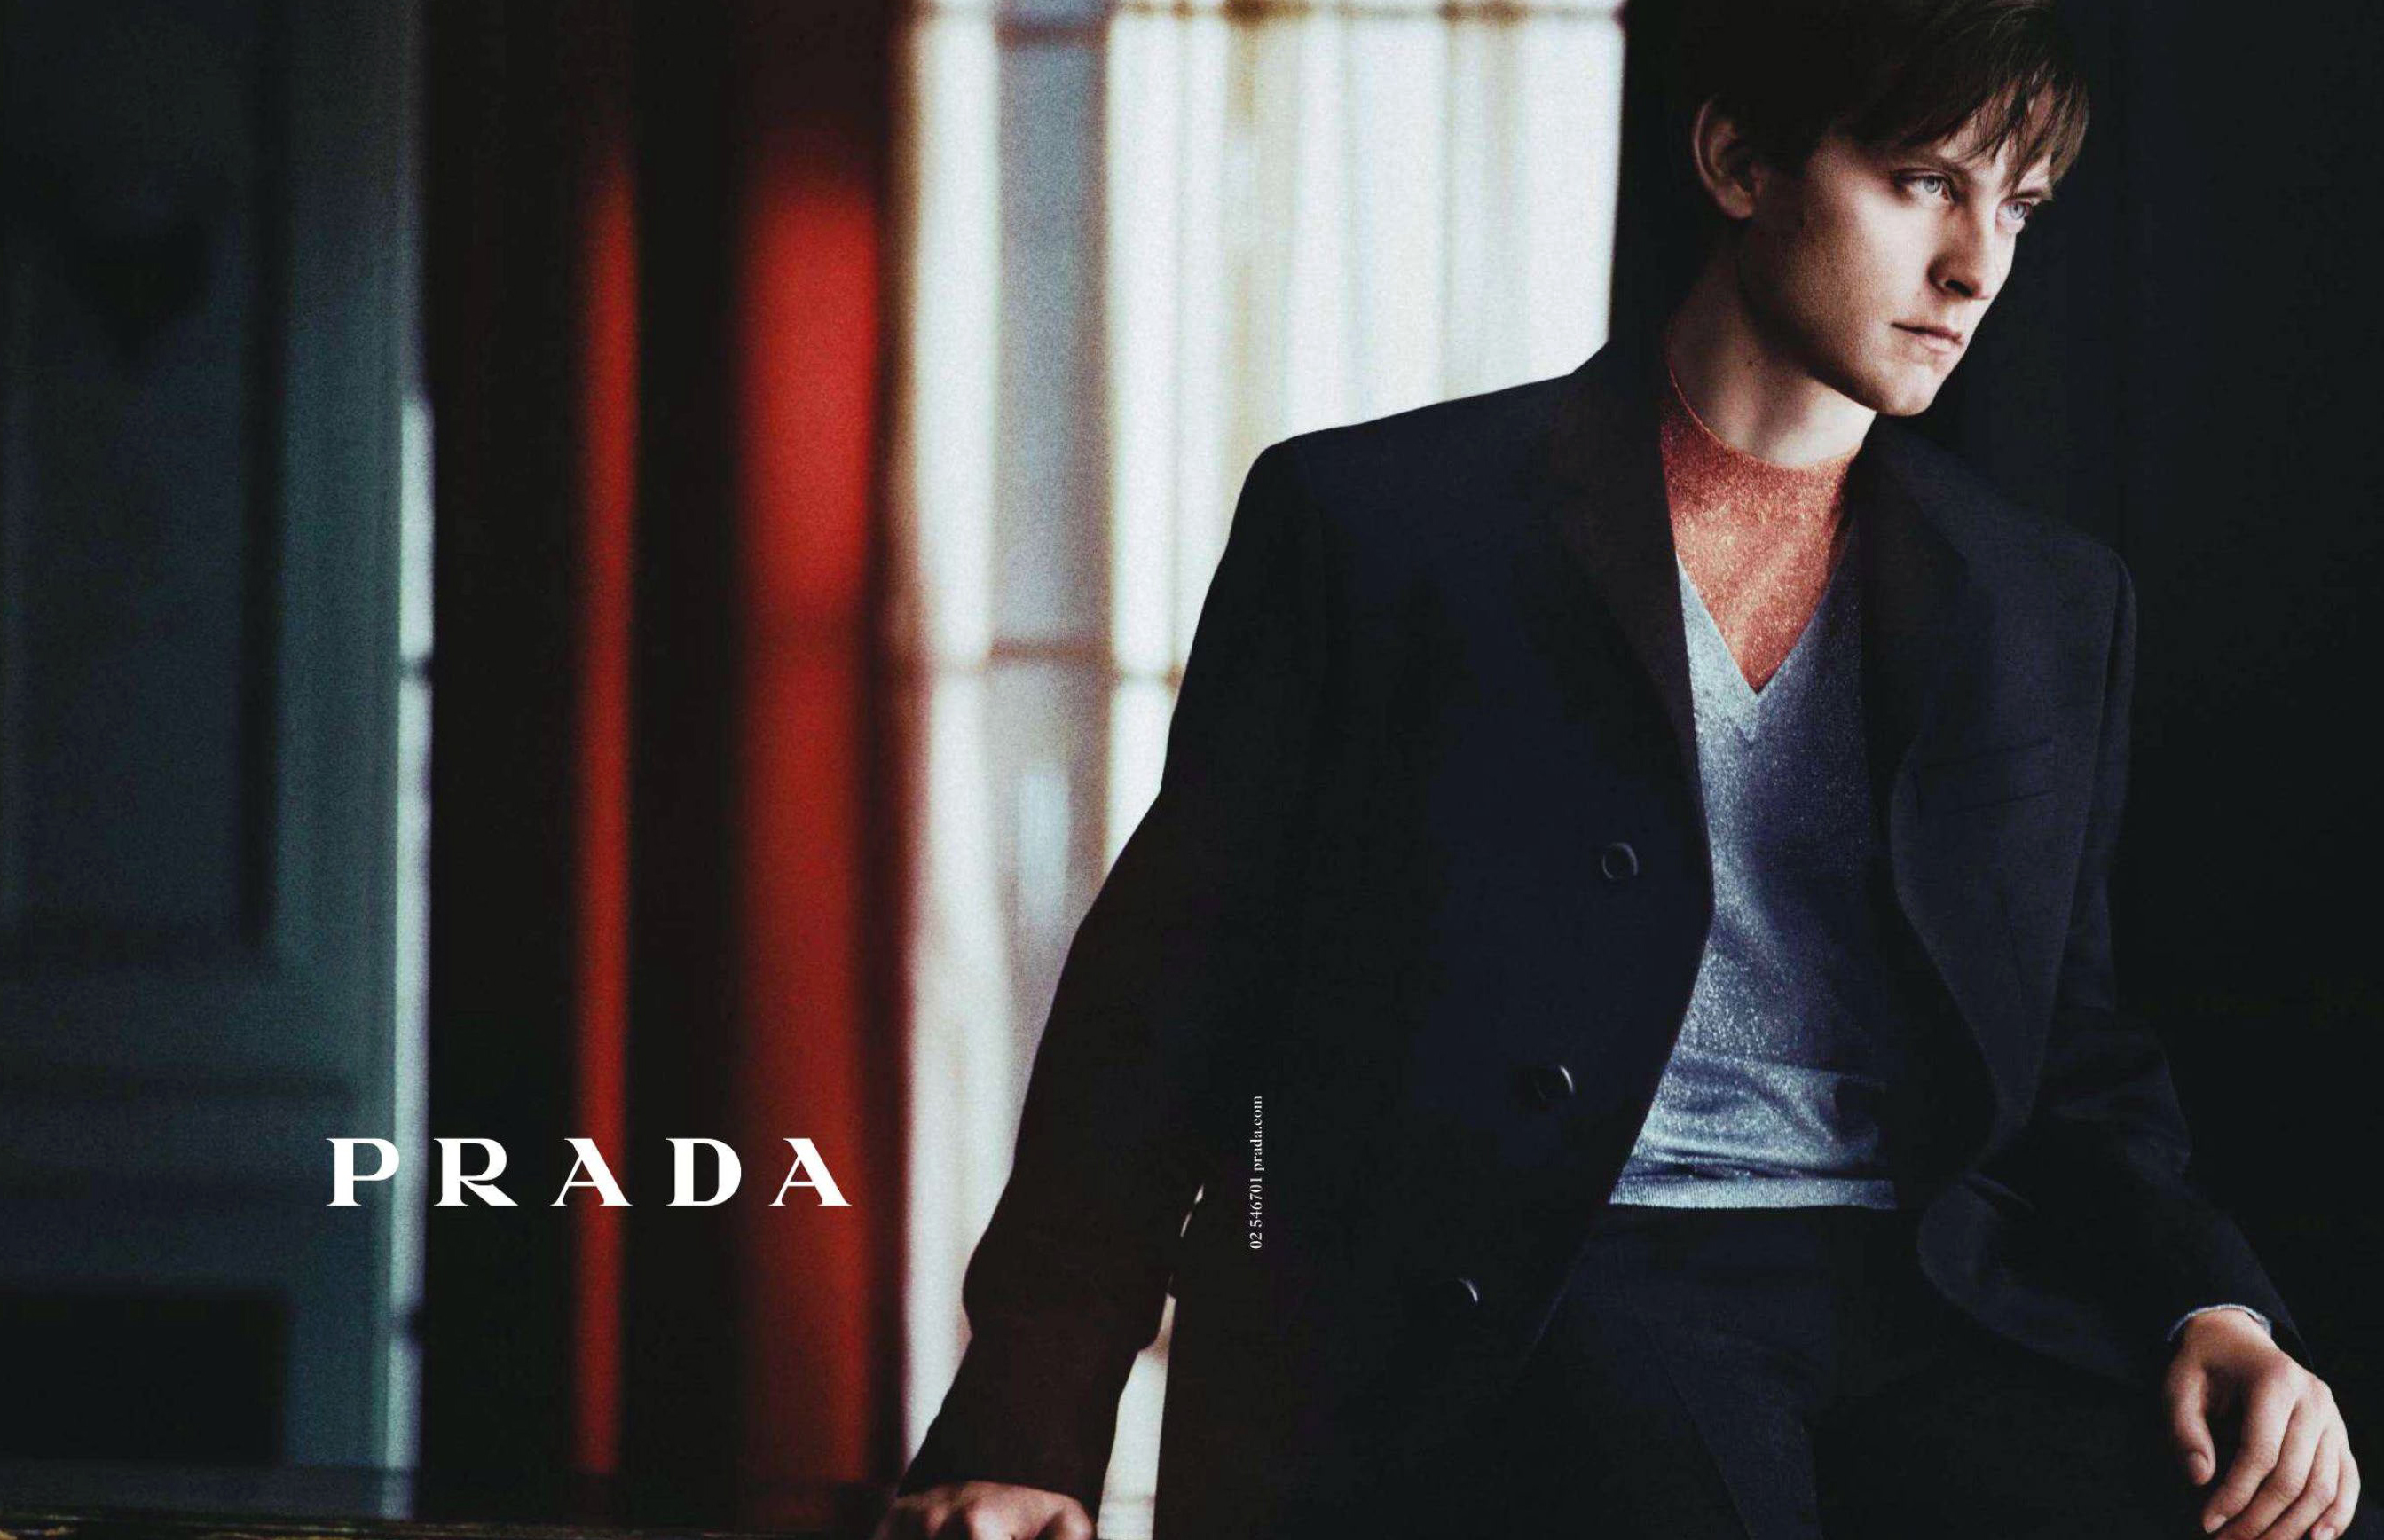 Prada Menswear | Art8amby's Blog